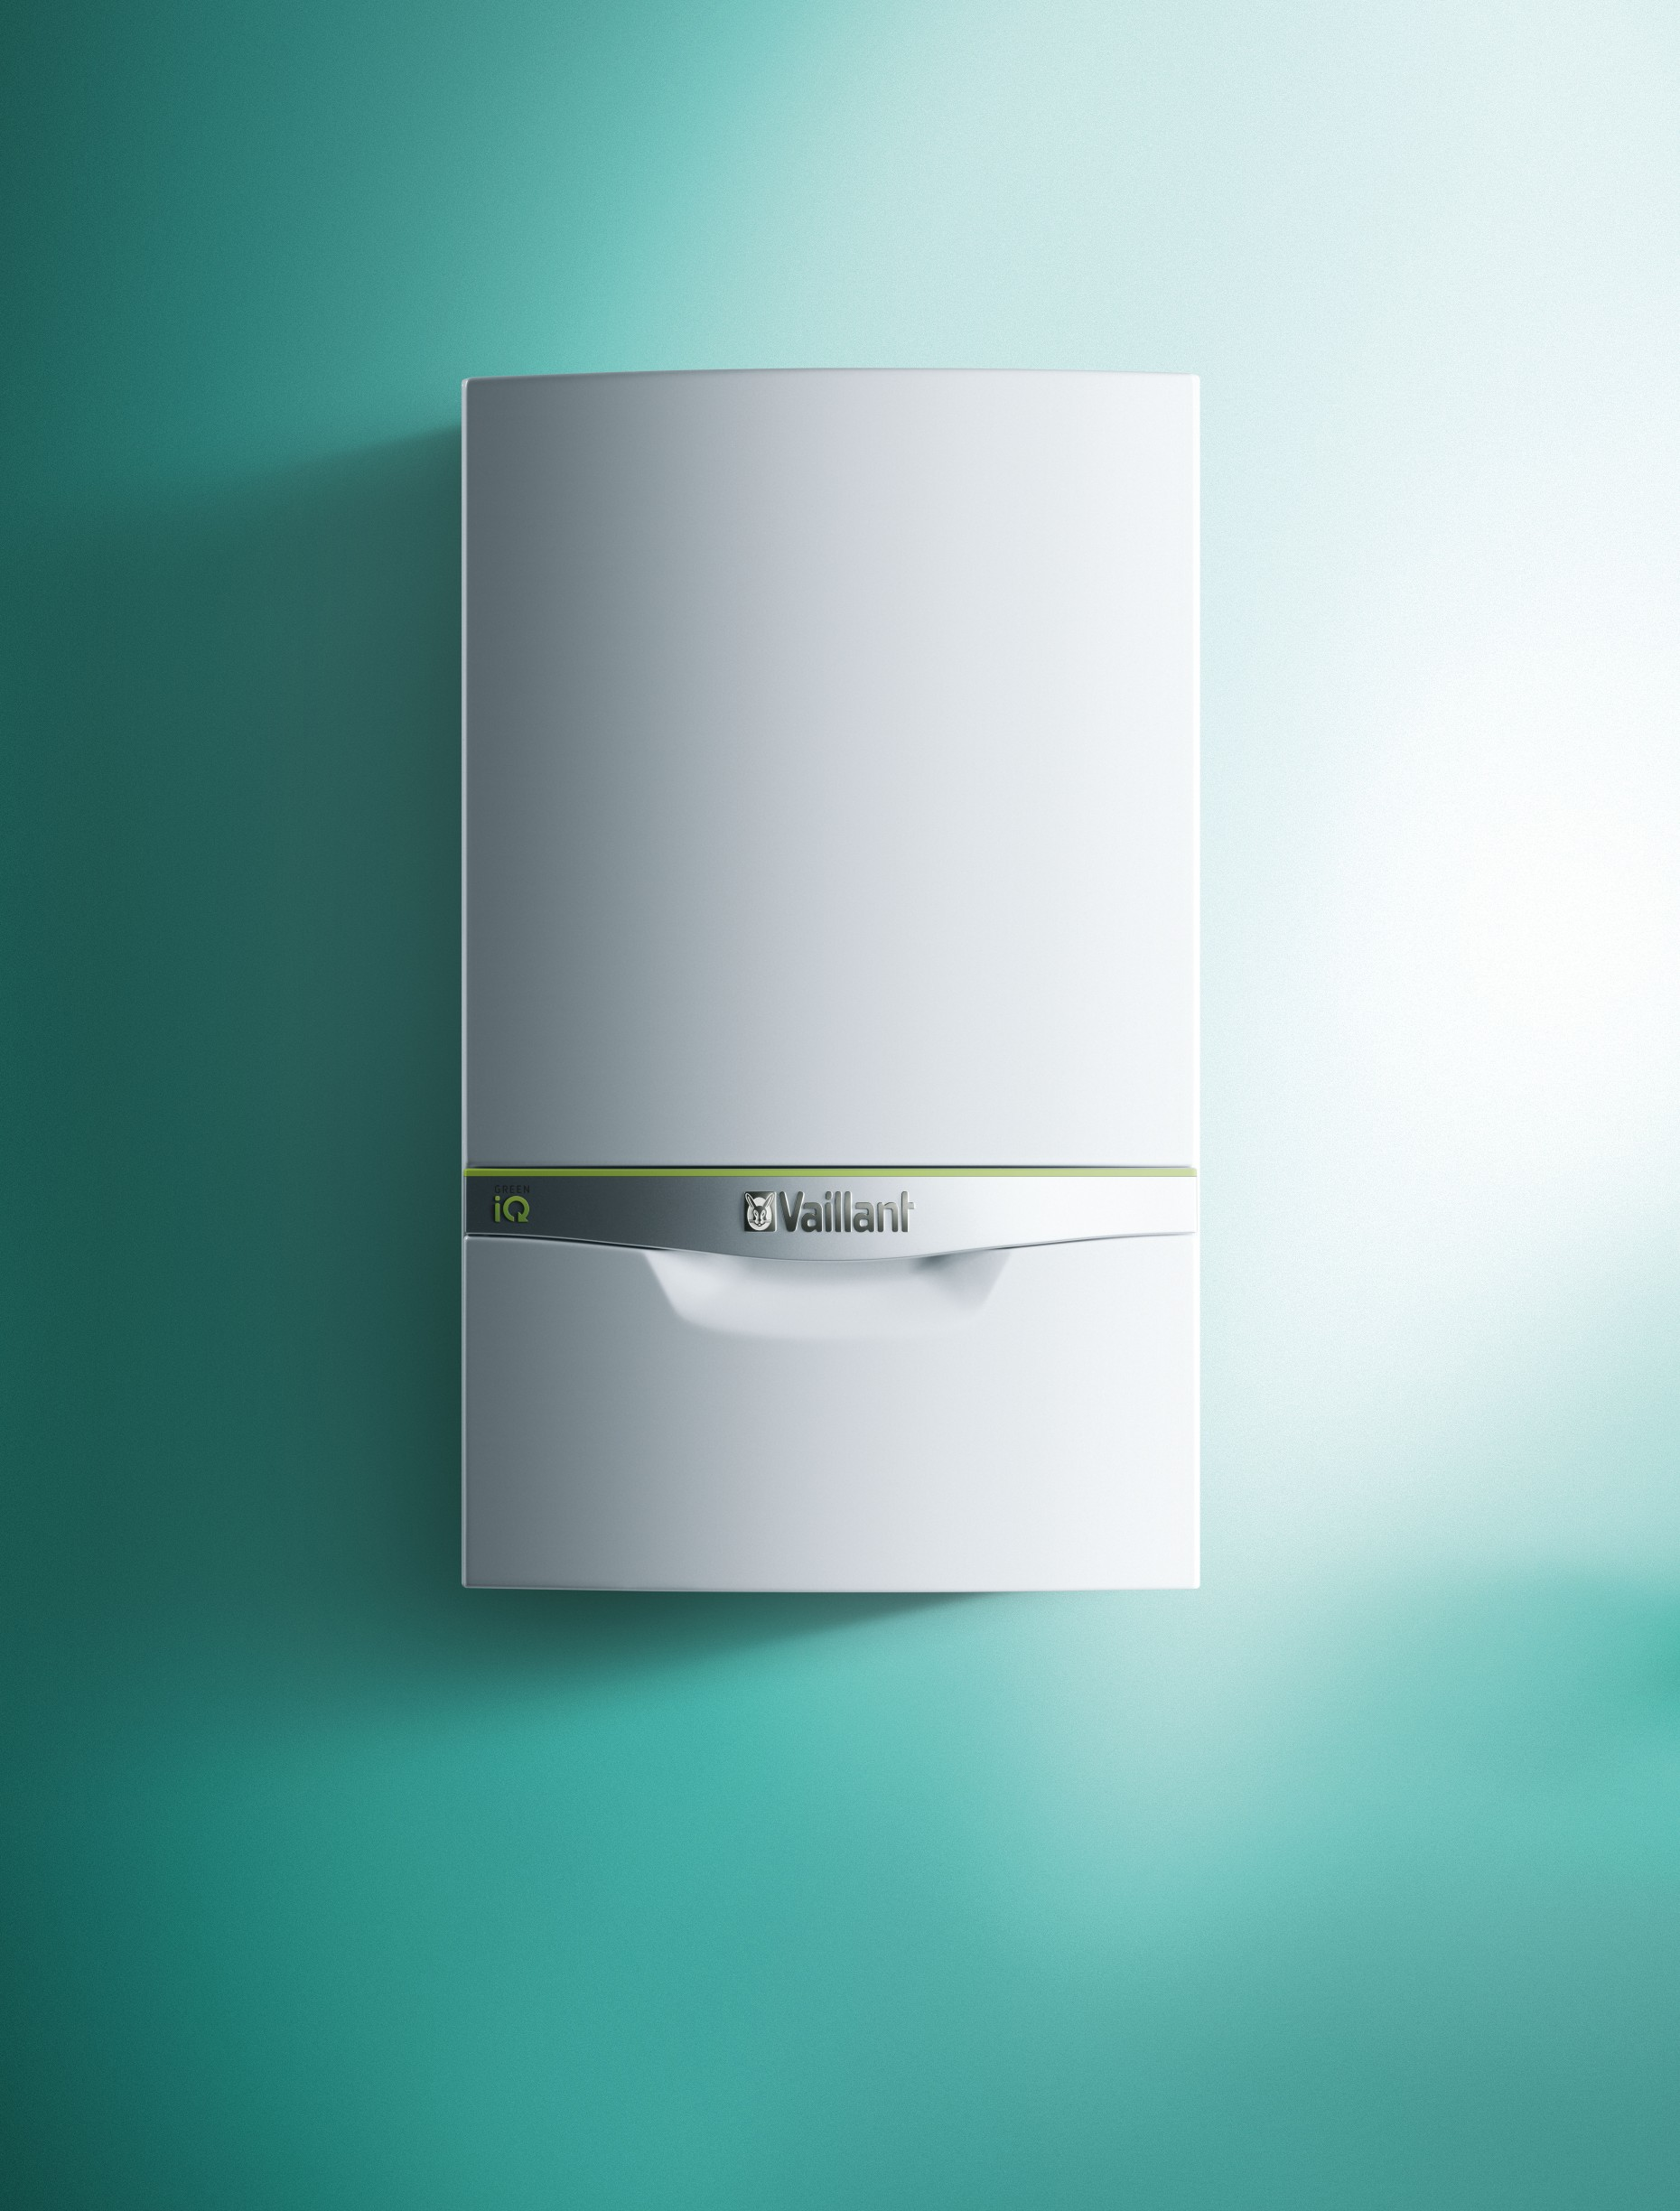 Vaillant VU 276/5-7 ecoTEC exclusive